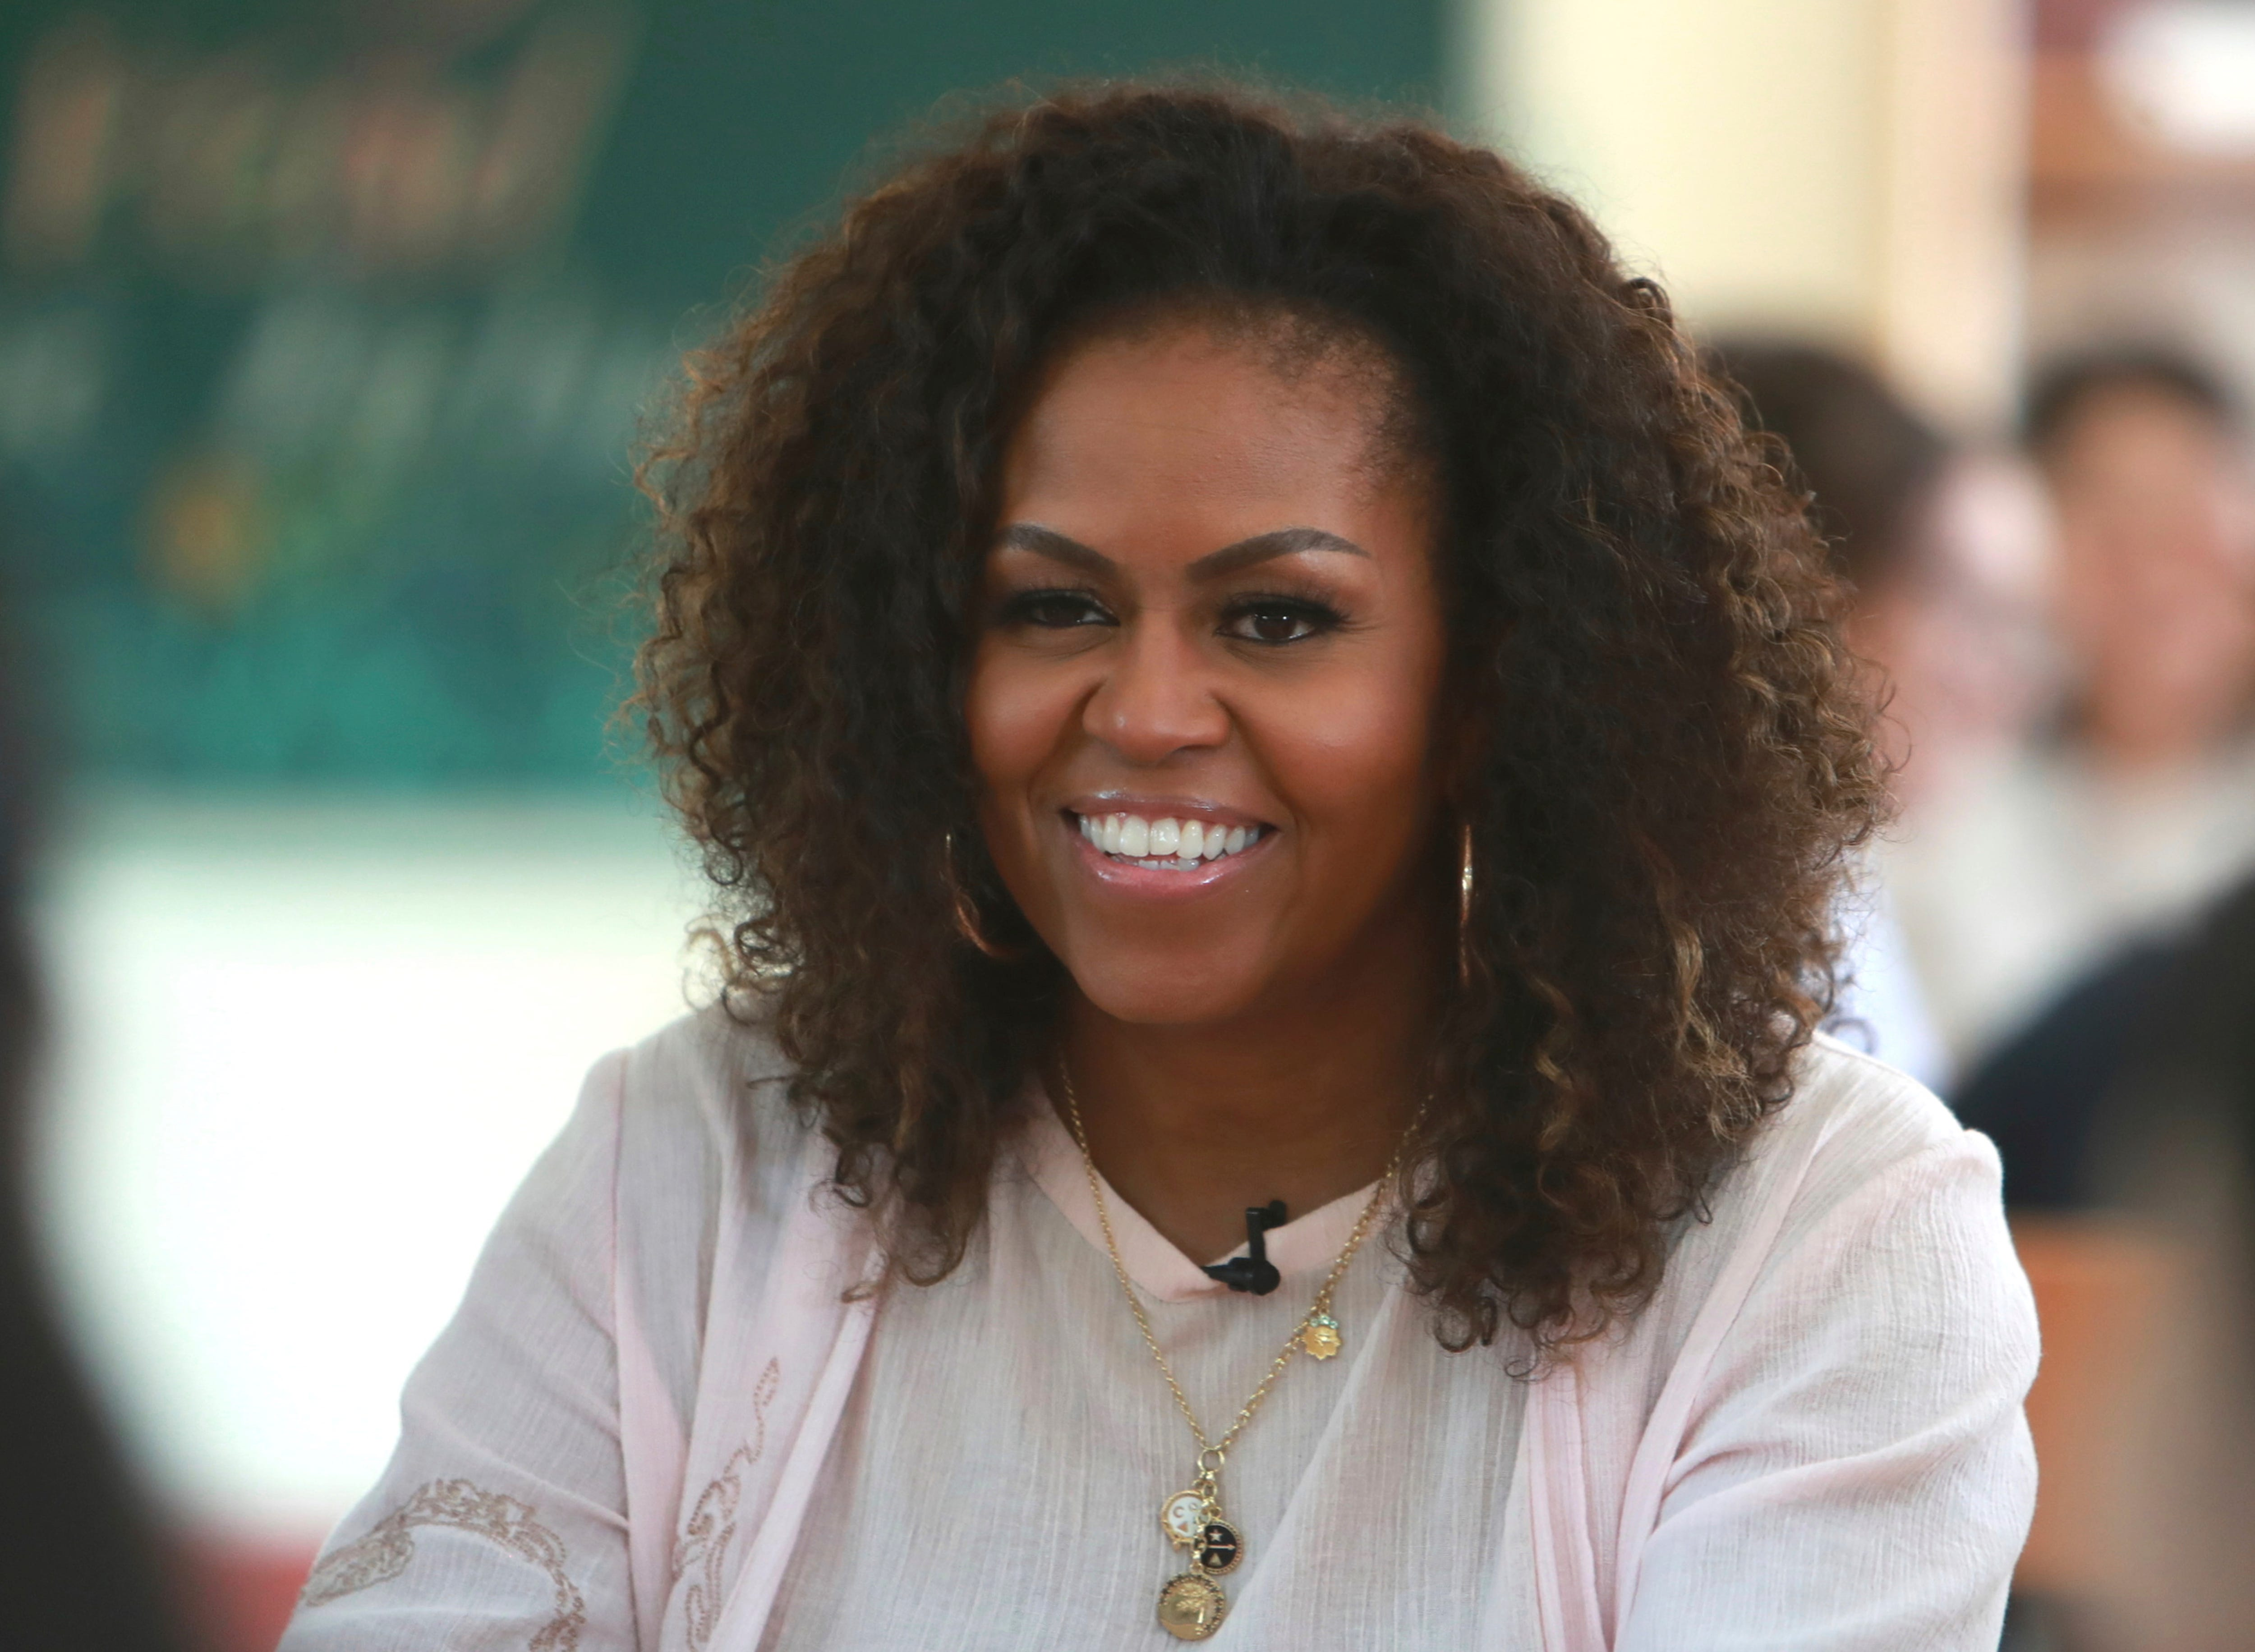 Michelle Obama listens to Lizzo, Nipsey Hussle and Ed Sheeran on her 2020 workout playlist